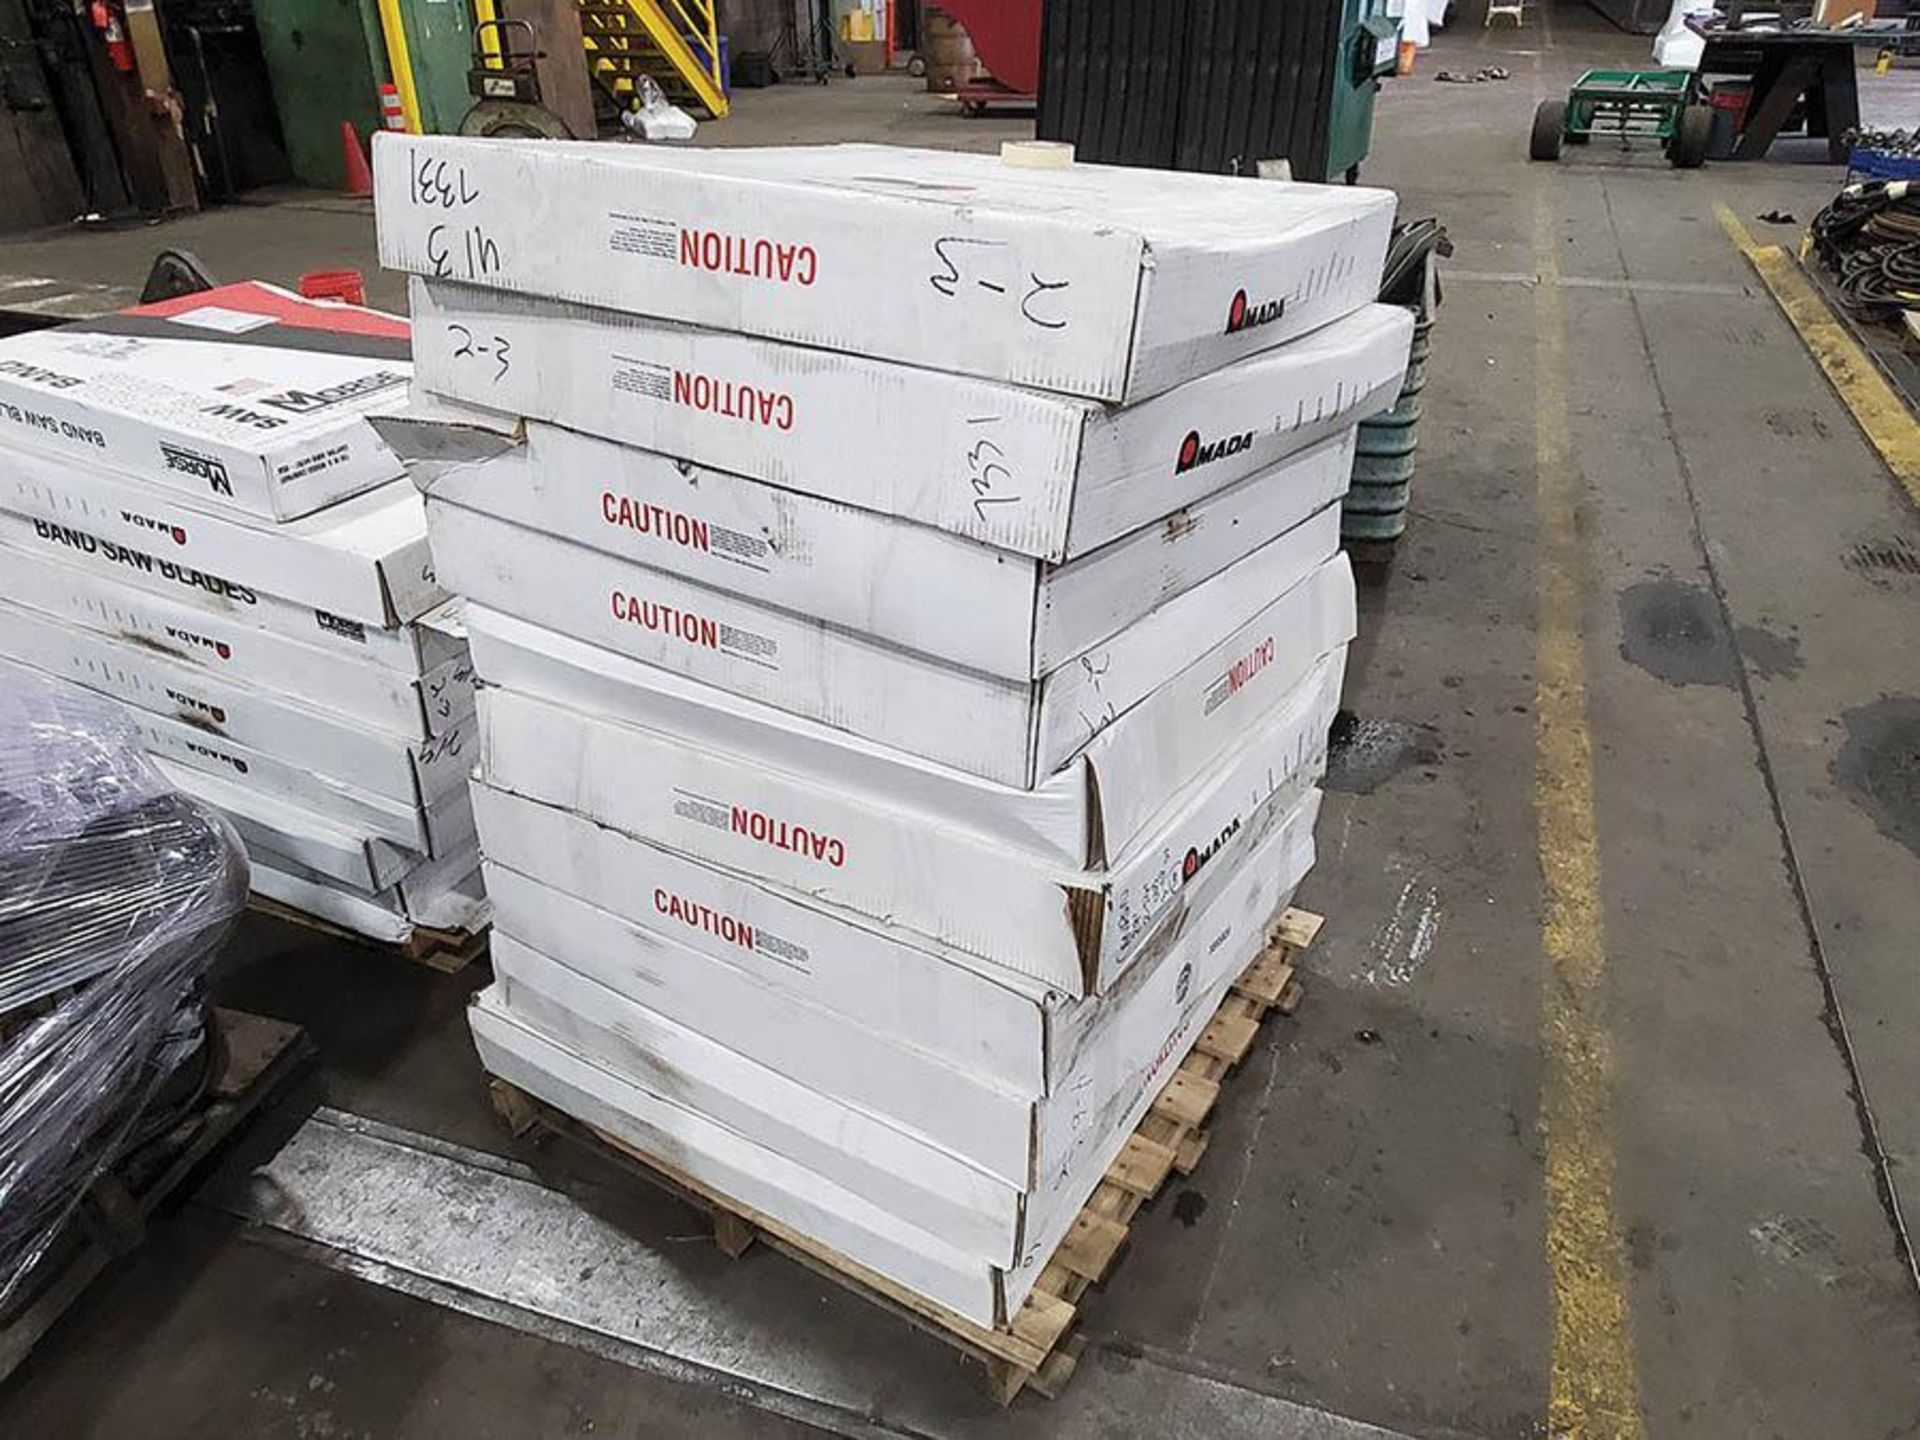 LOT ON PALLET, AMADA BANDSAW BLADES 29FT X 2 5 8IN - Image 4 of 4